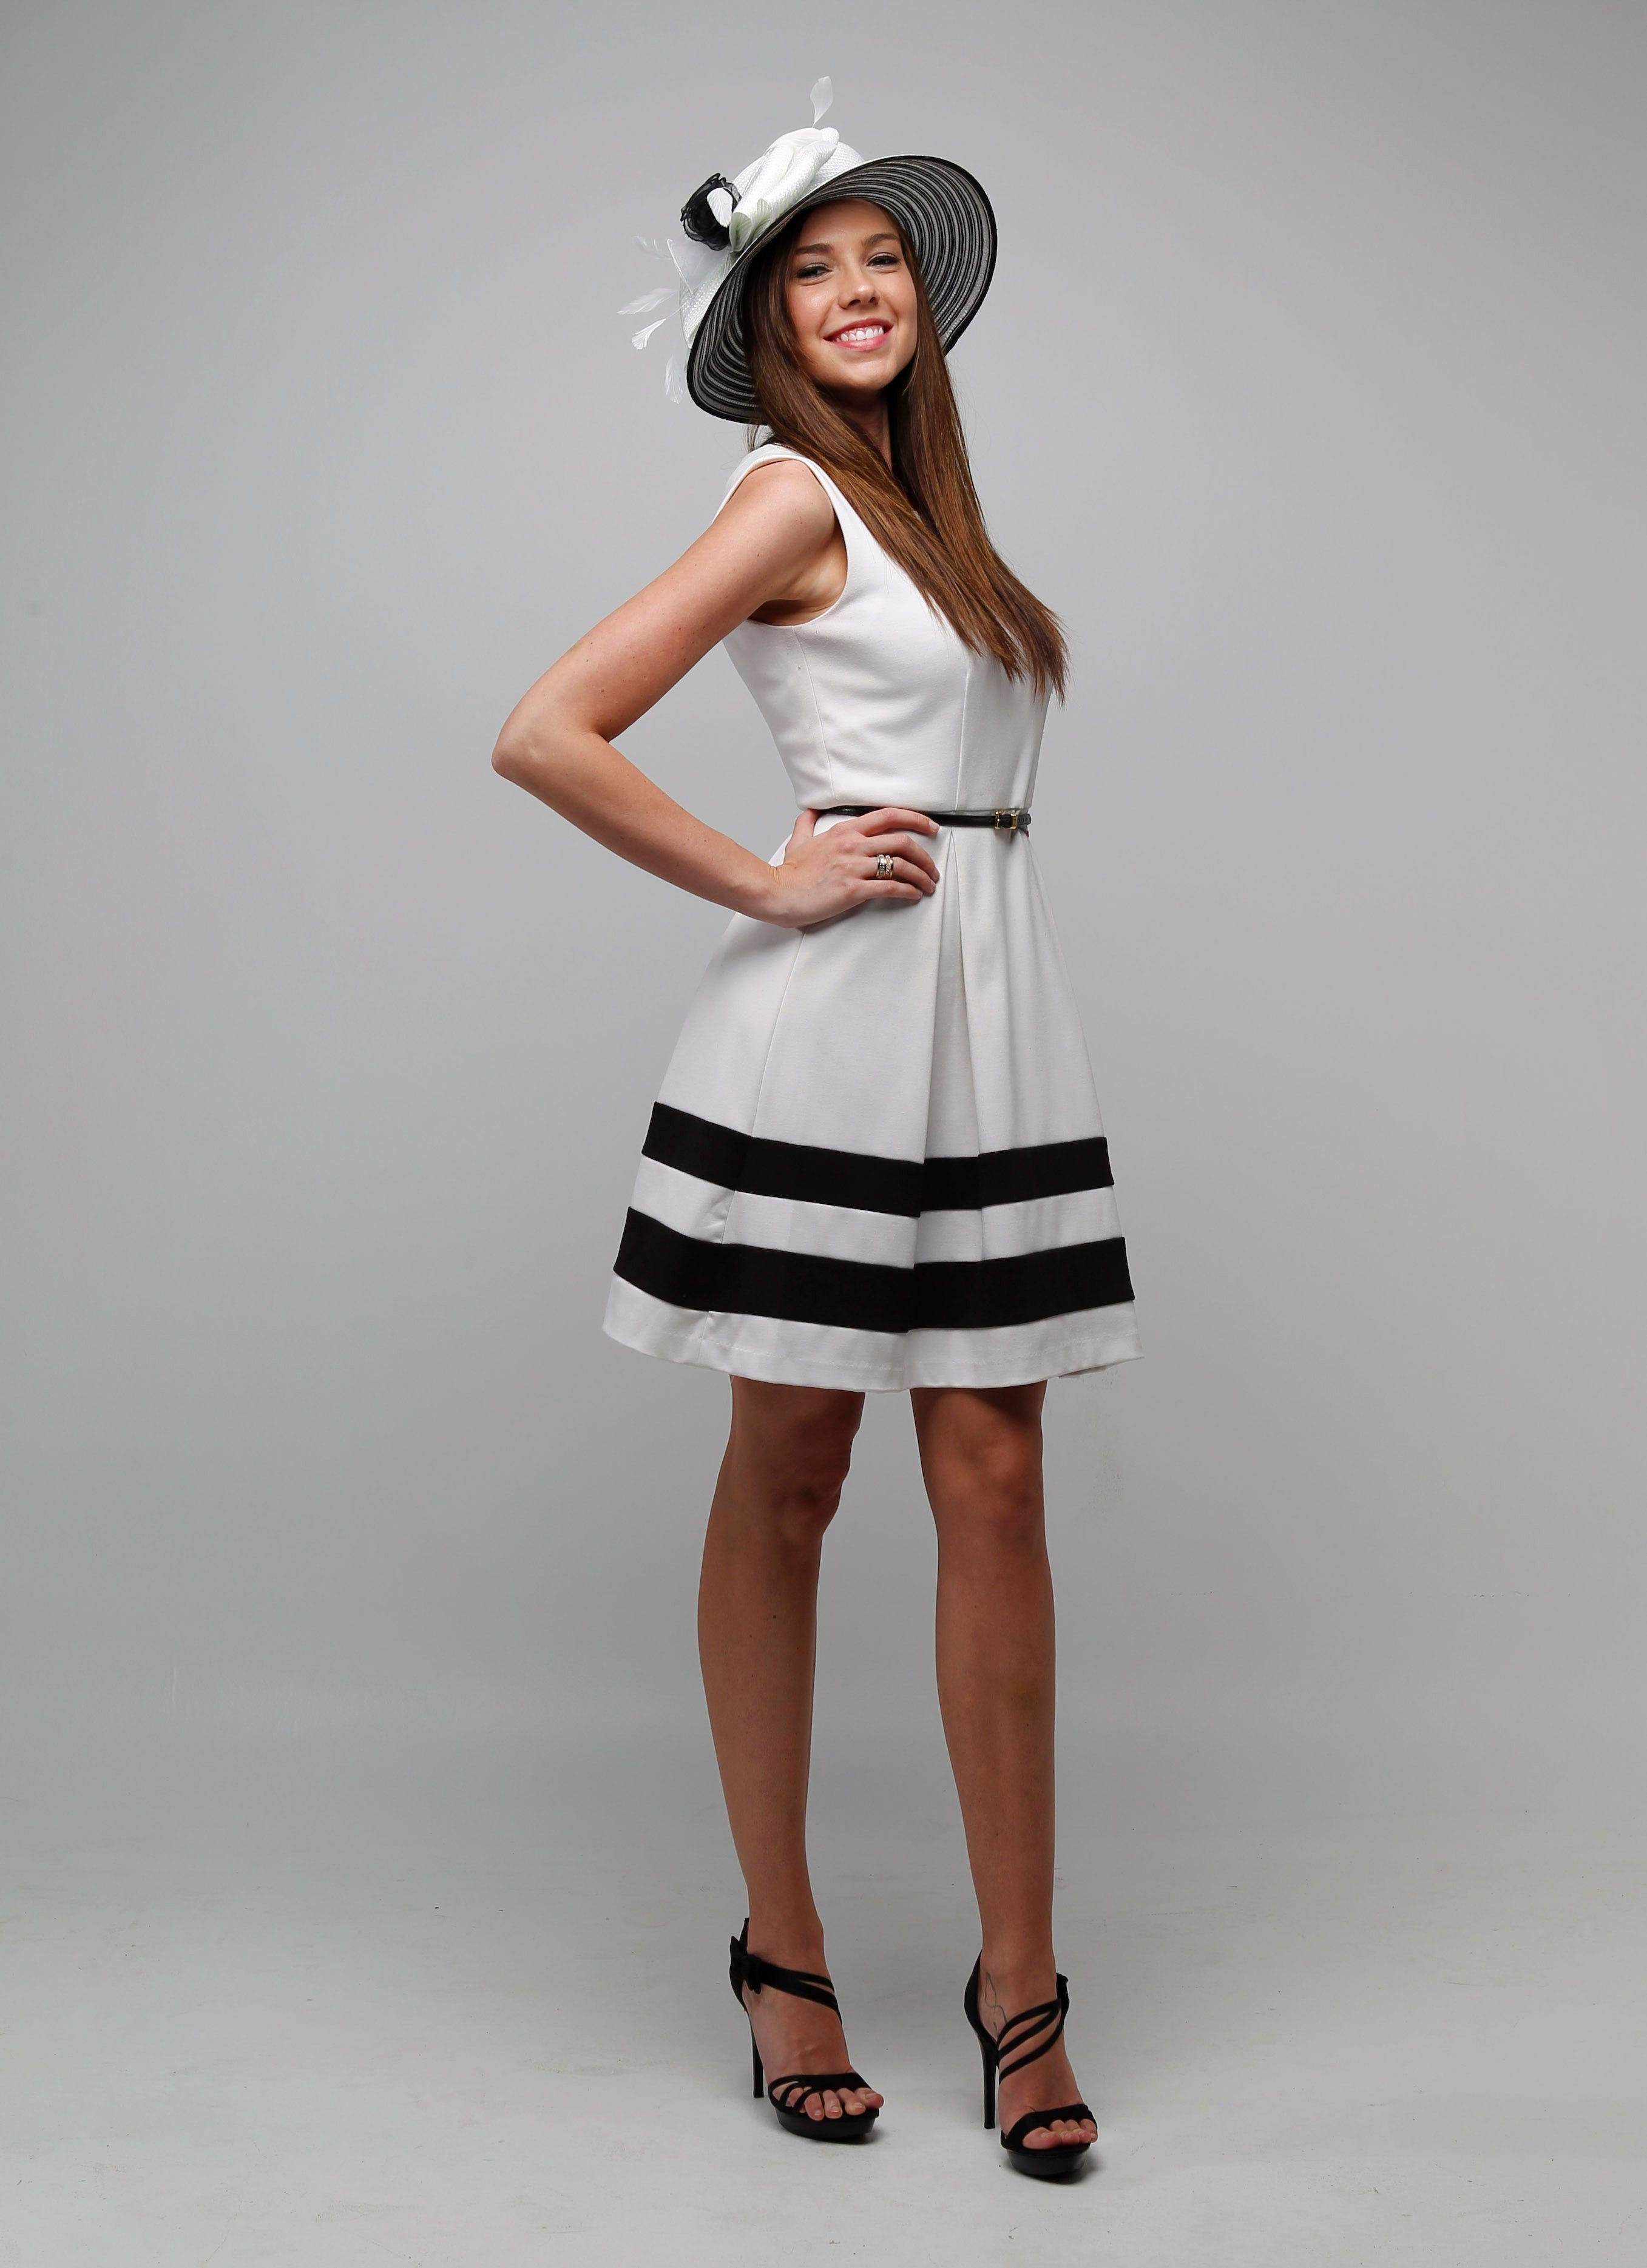 Derby Dresses for 2018